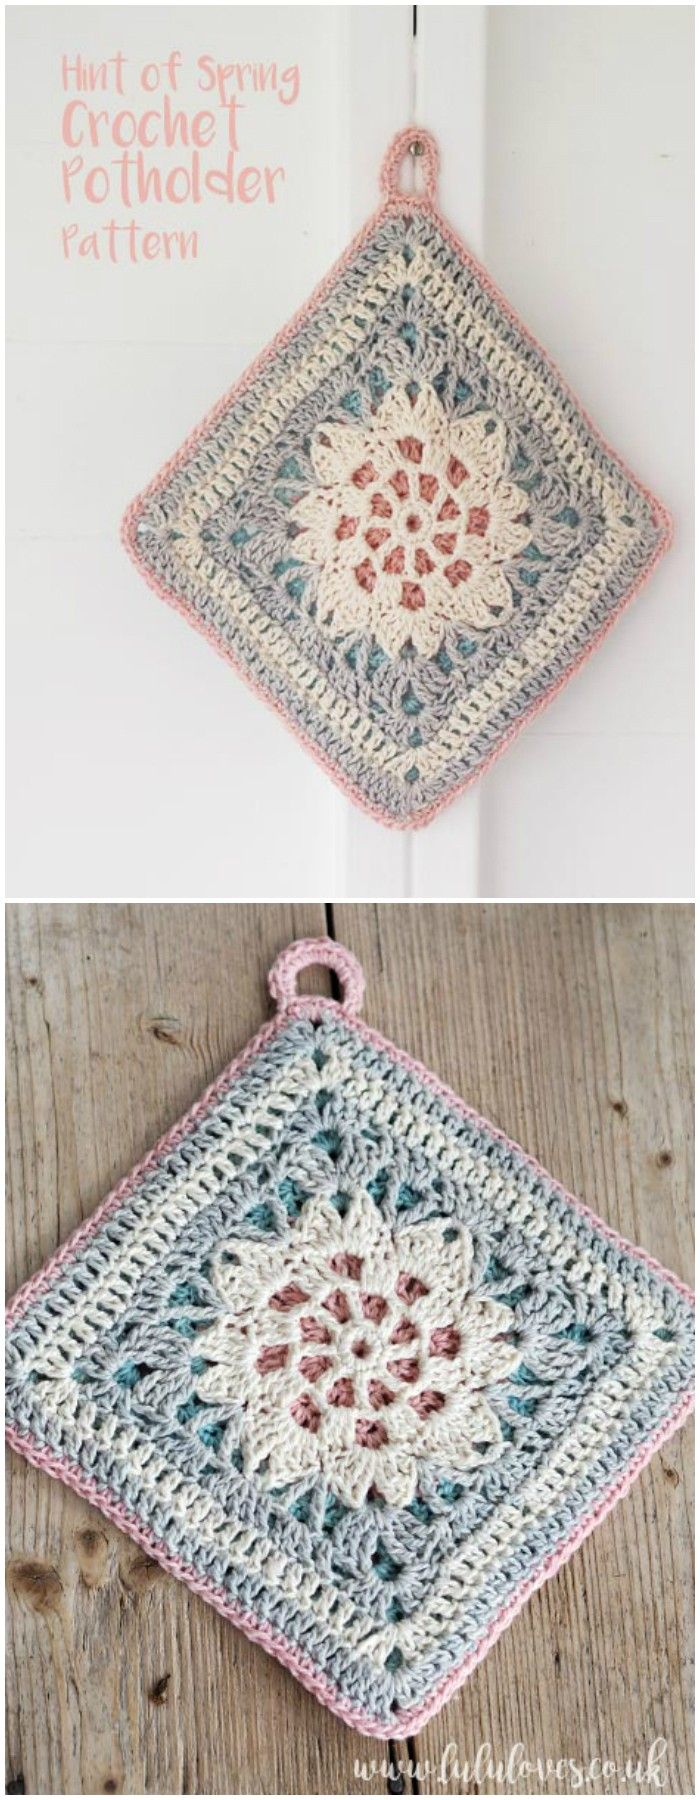 I have rounded up some of the best and gorgeous #crochet #patterns for your inspiration.Crochet Pattern - Hint Of Spring Potholder